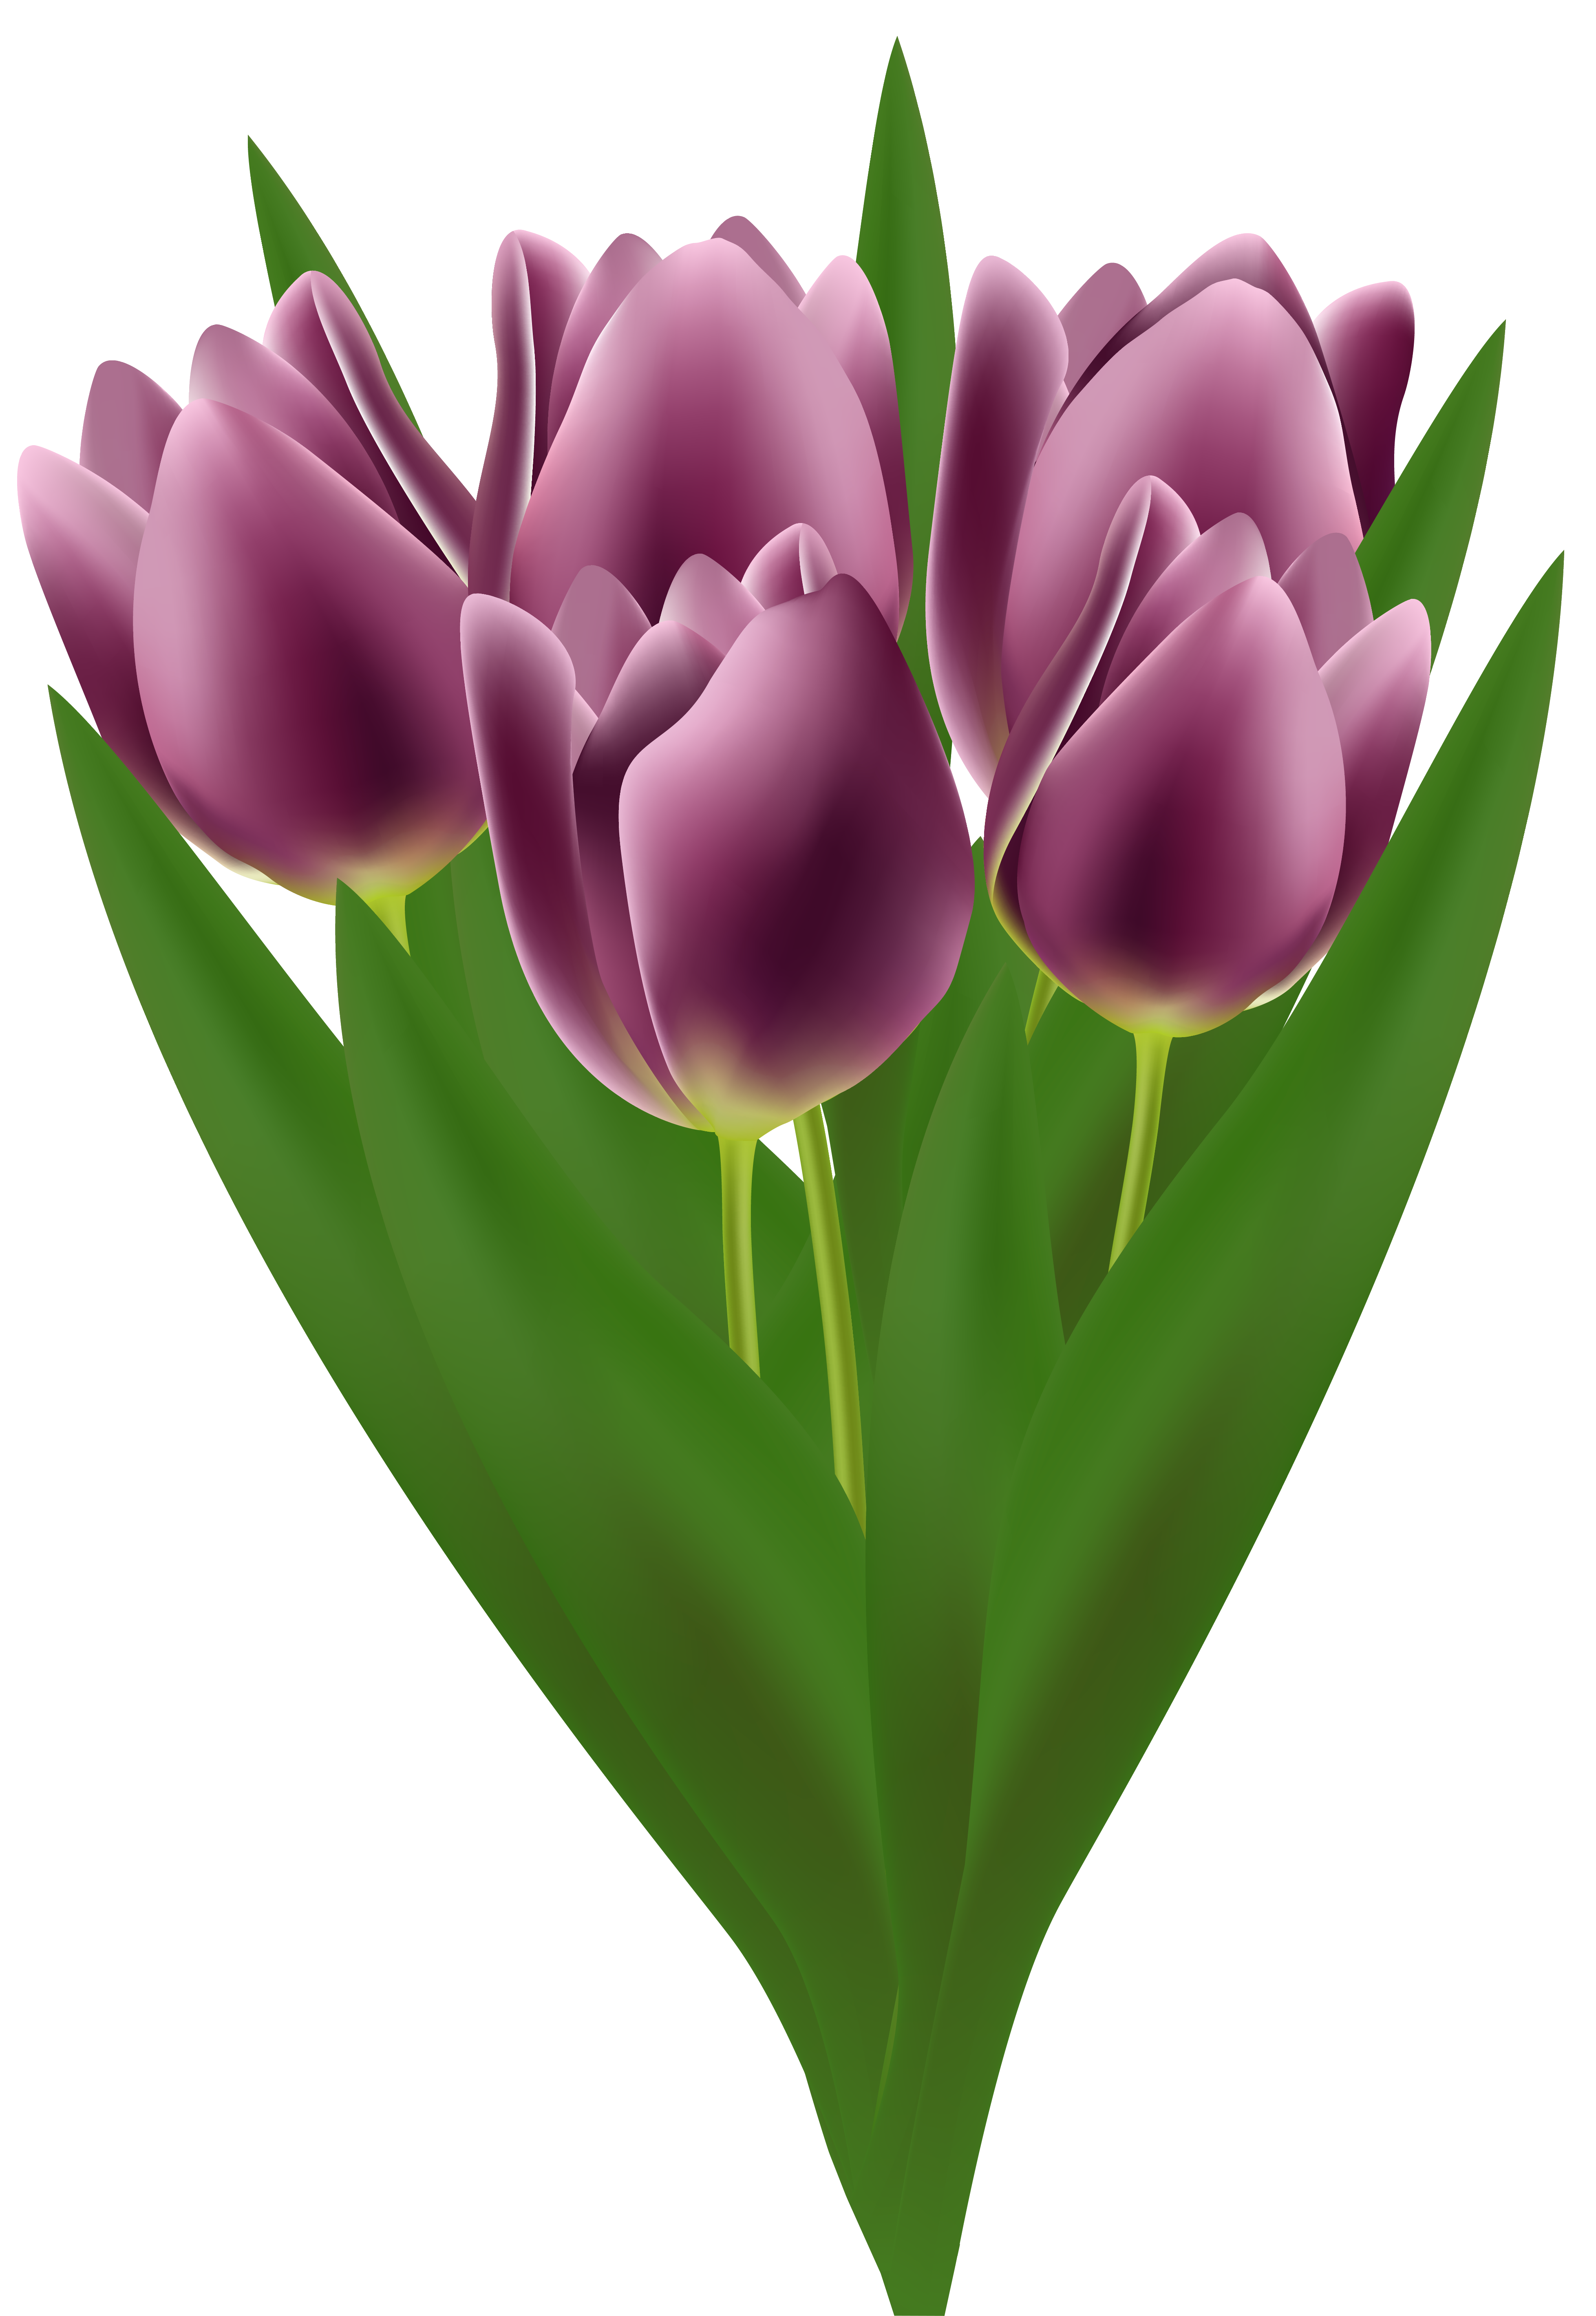 svg freeuse download Bouquet clipart tulip. Tulips transparent png clip